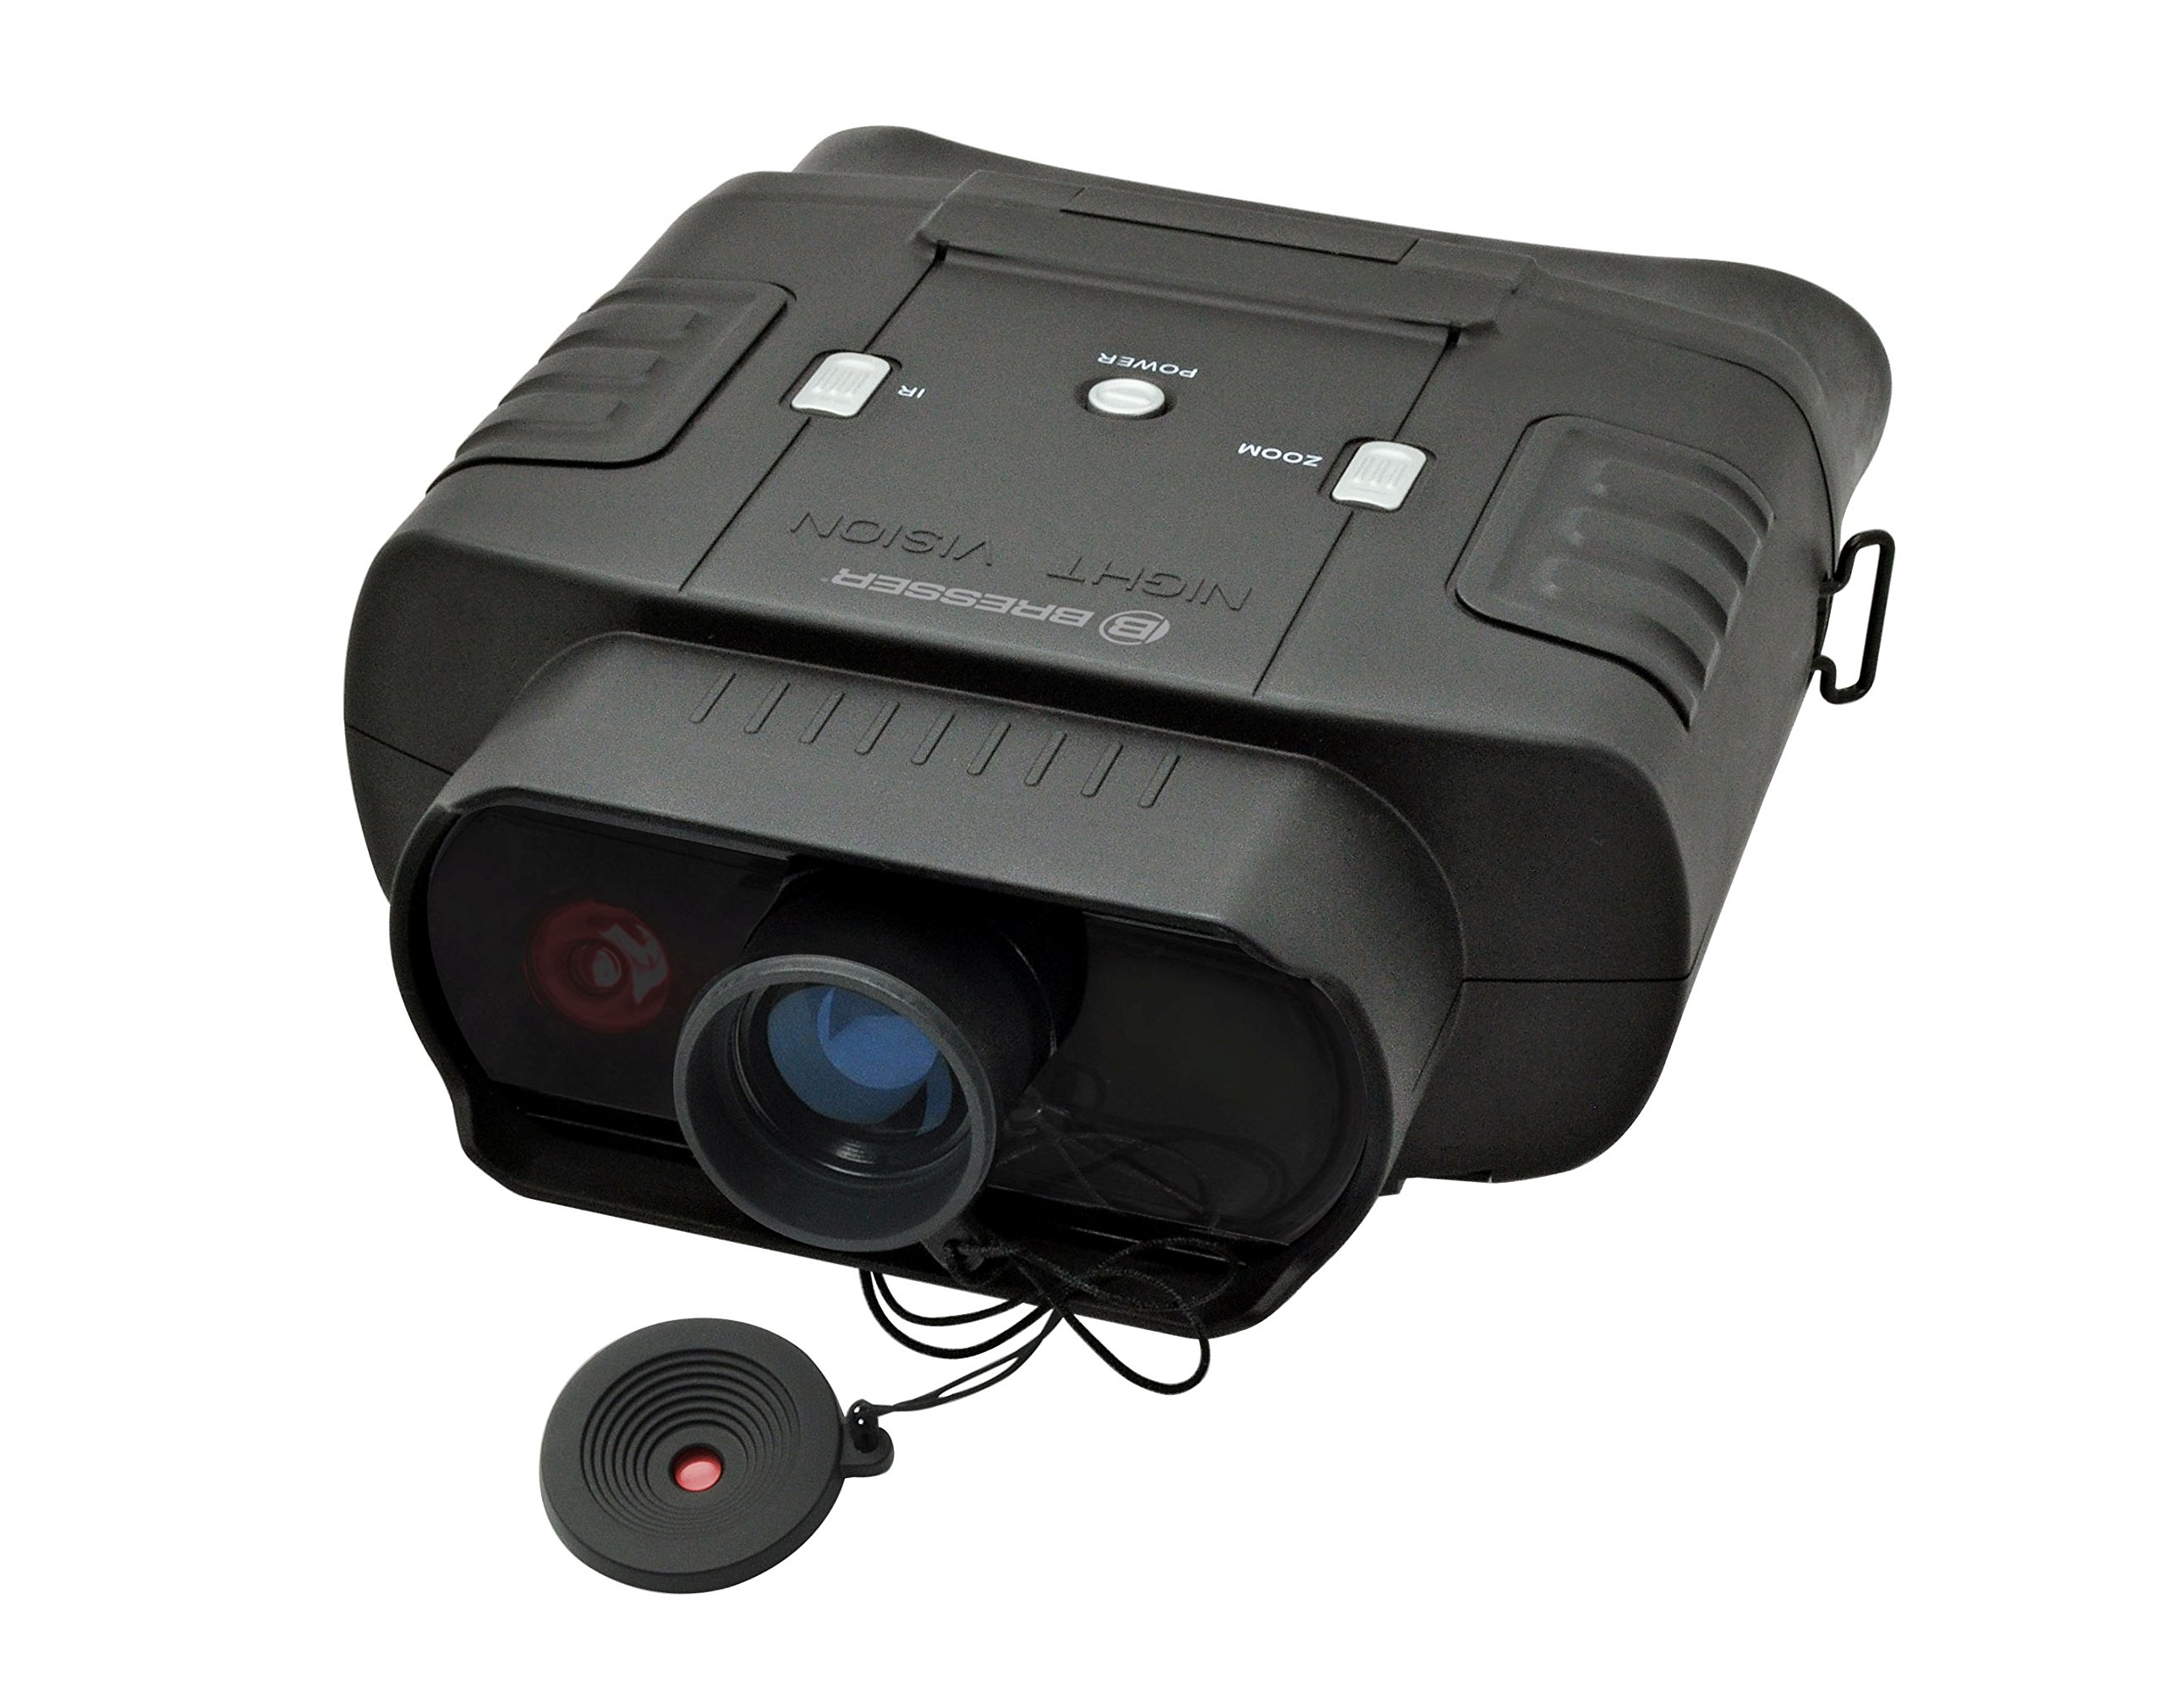 Bresser Digital Night Vision Binoculars 3 x 20  with display